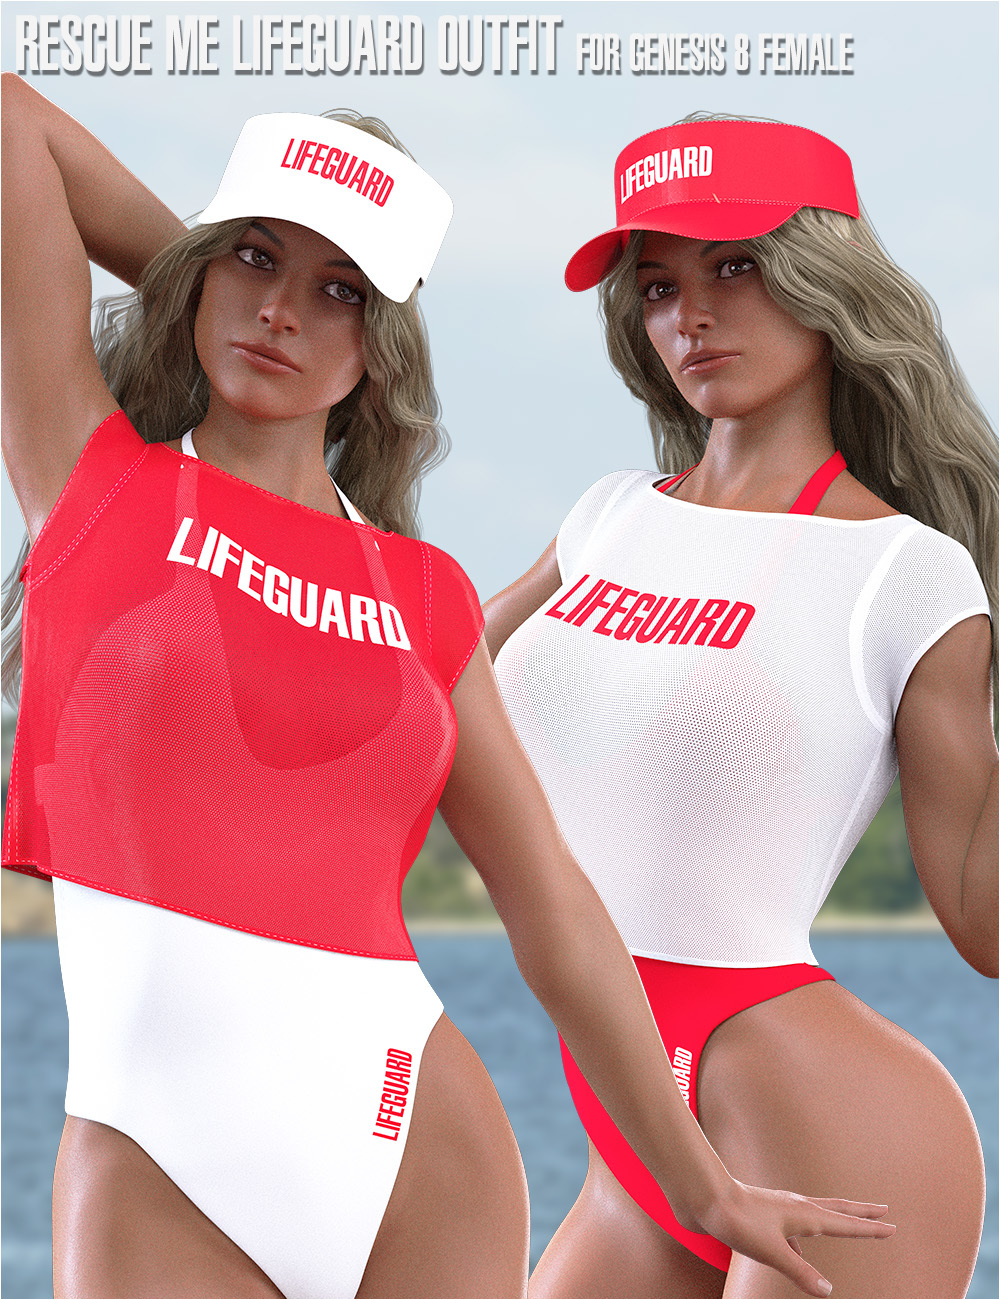 dForce Rescue Me Lifeguard Outfit for Genesis 8 Female